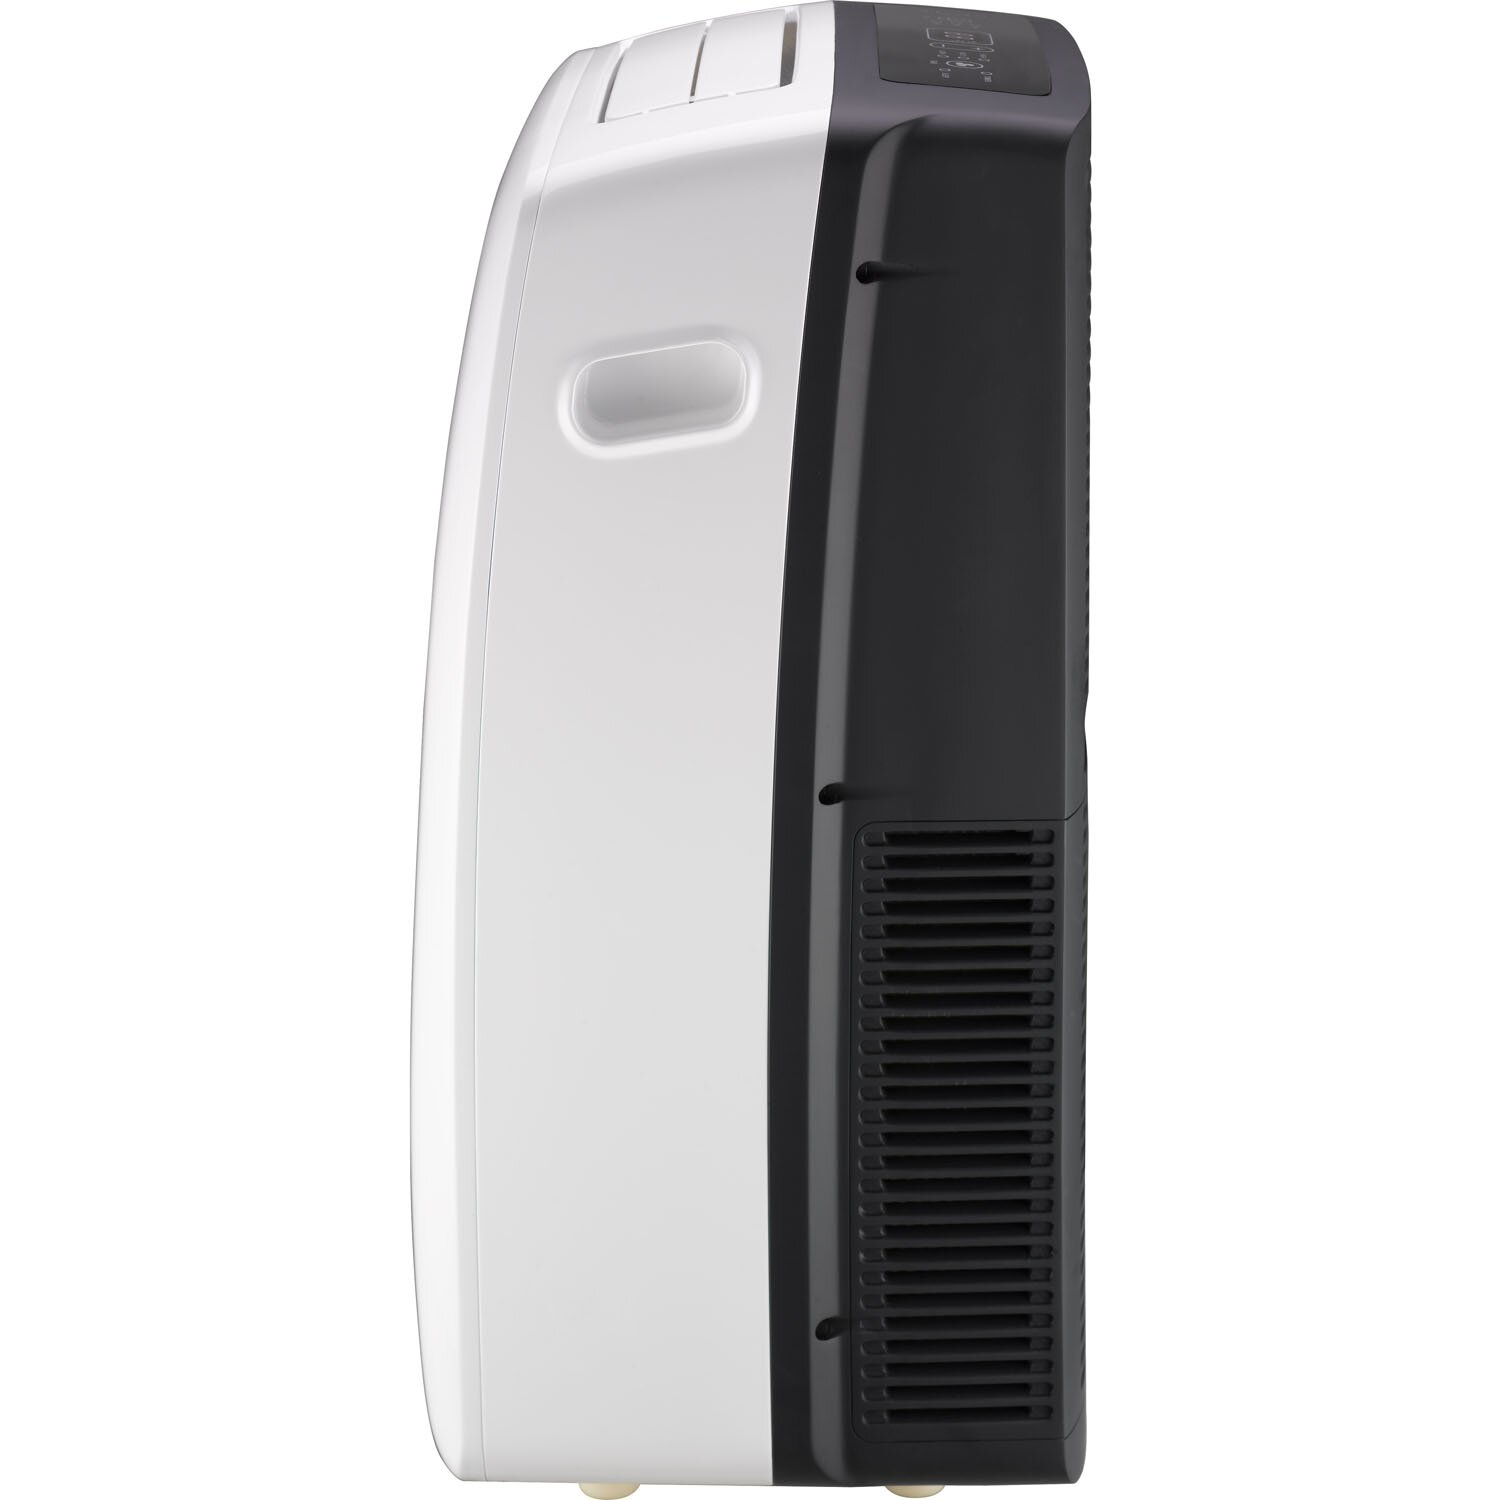 #7F714C HiSense 10000 BTU Portable Air Conditioner With Remote  Most Recent 13510 Portable Air Conditioner Ratings image with 1500x1500 px on helpvideos.info - Air Conditioners, Air Coolers and more